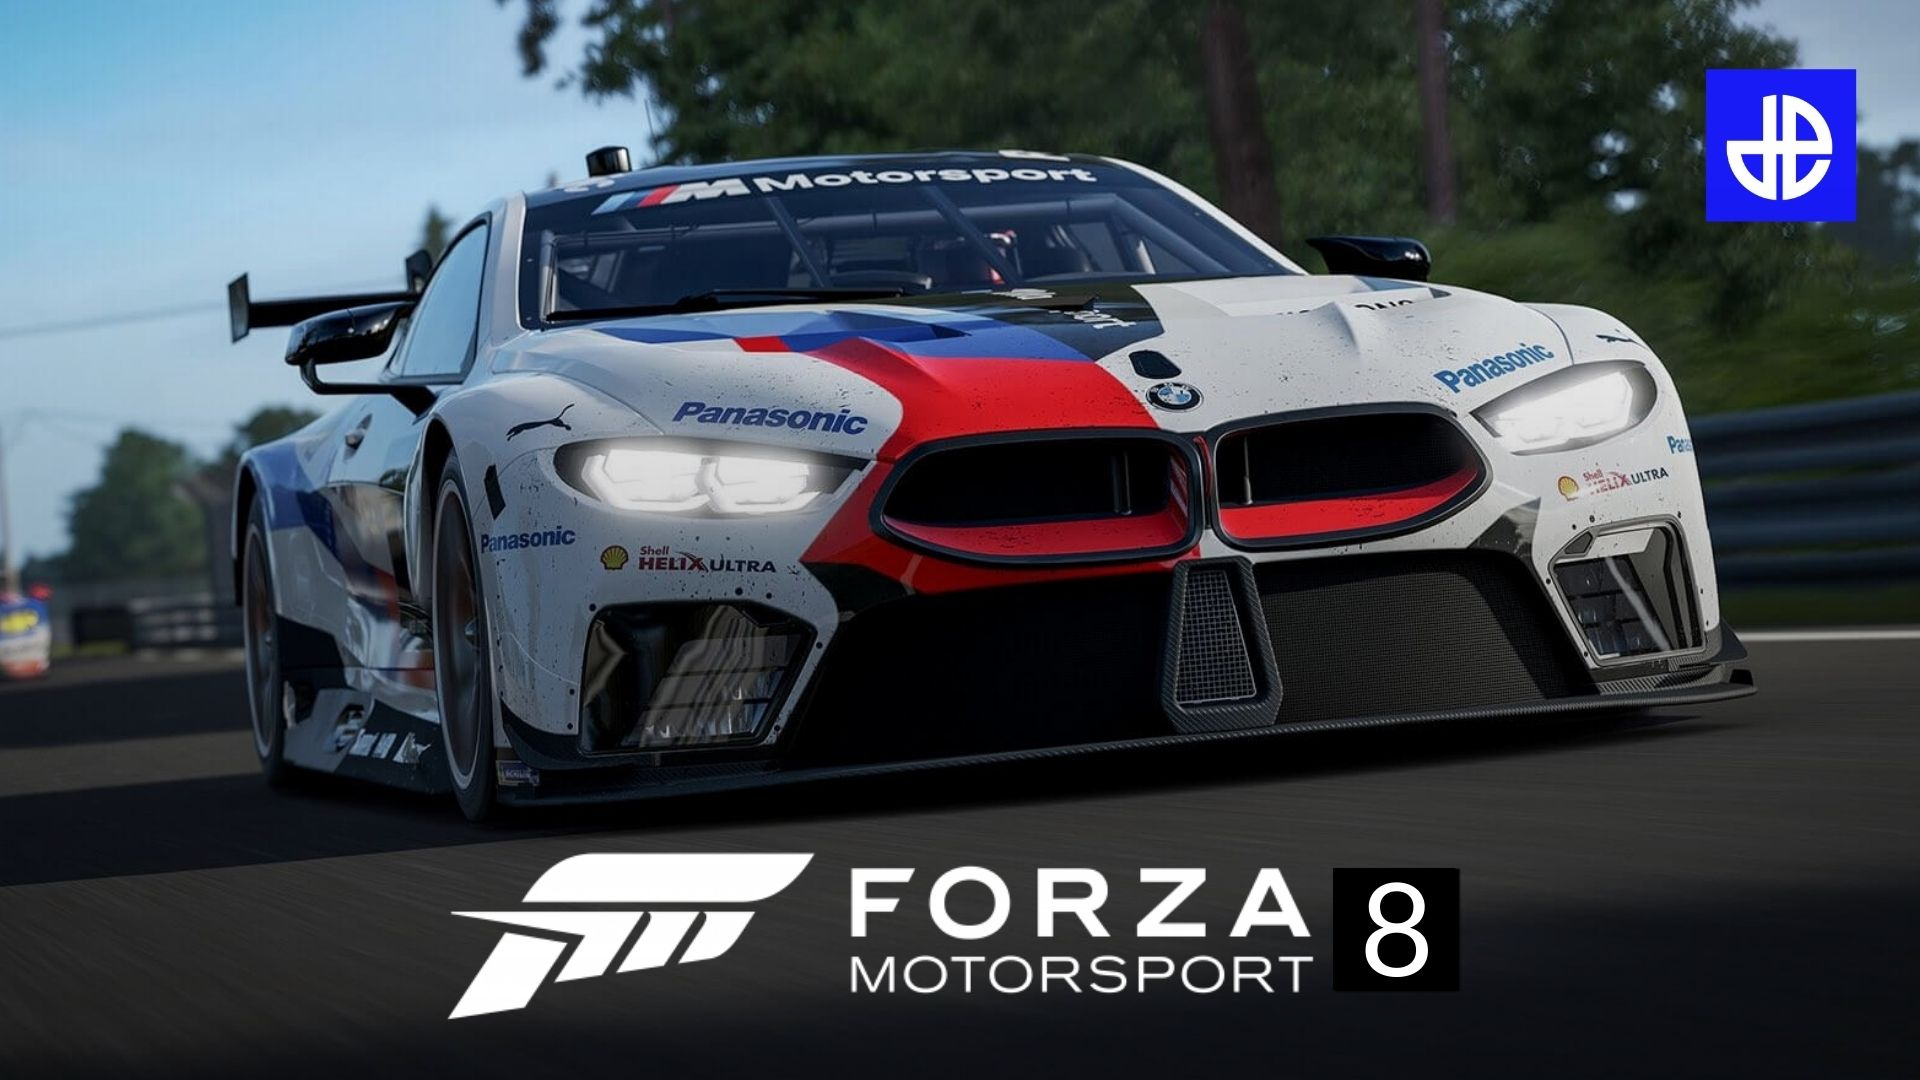 Forza 8 vehicle